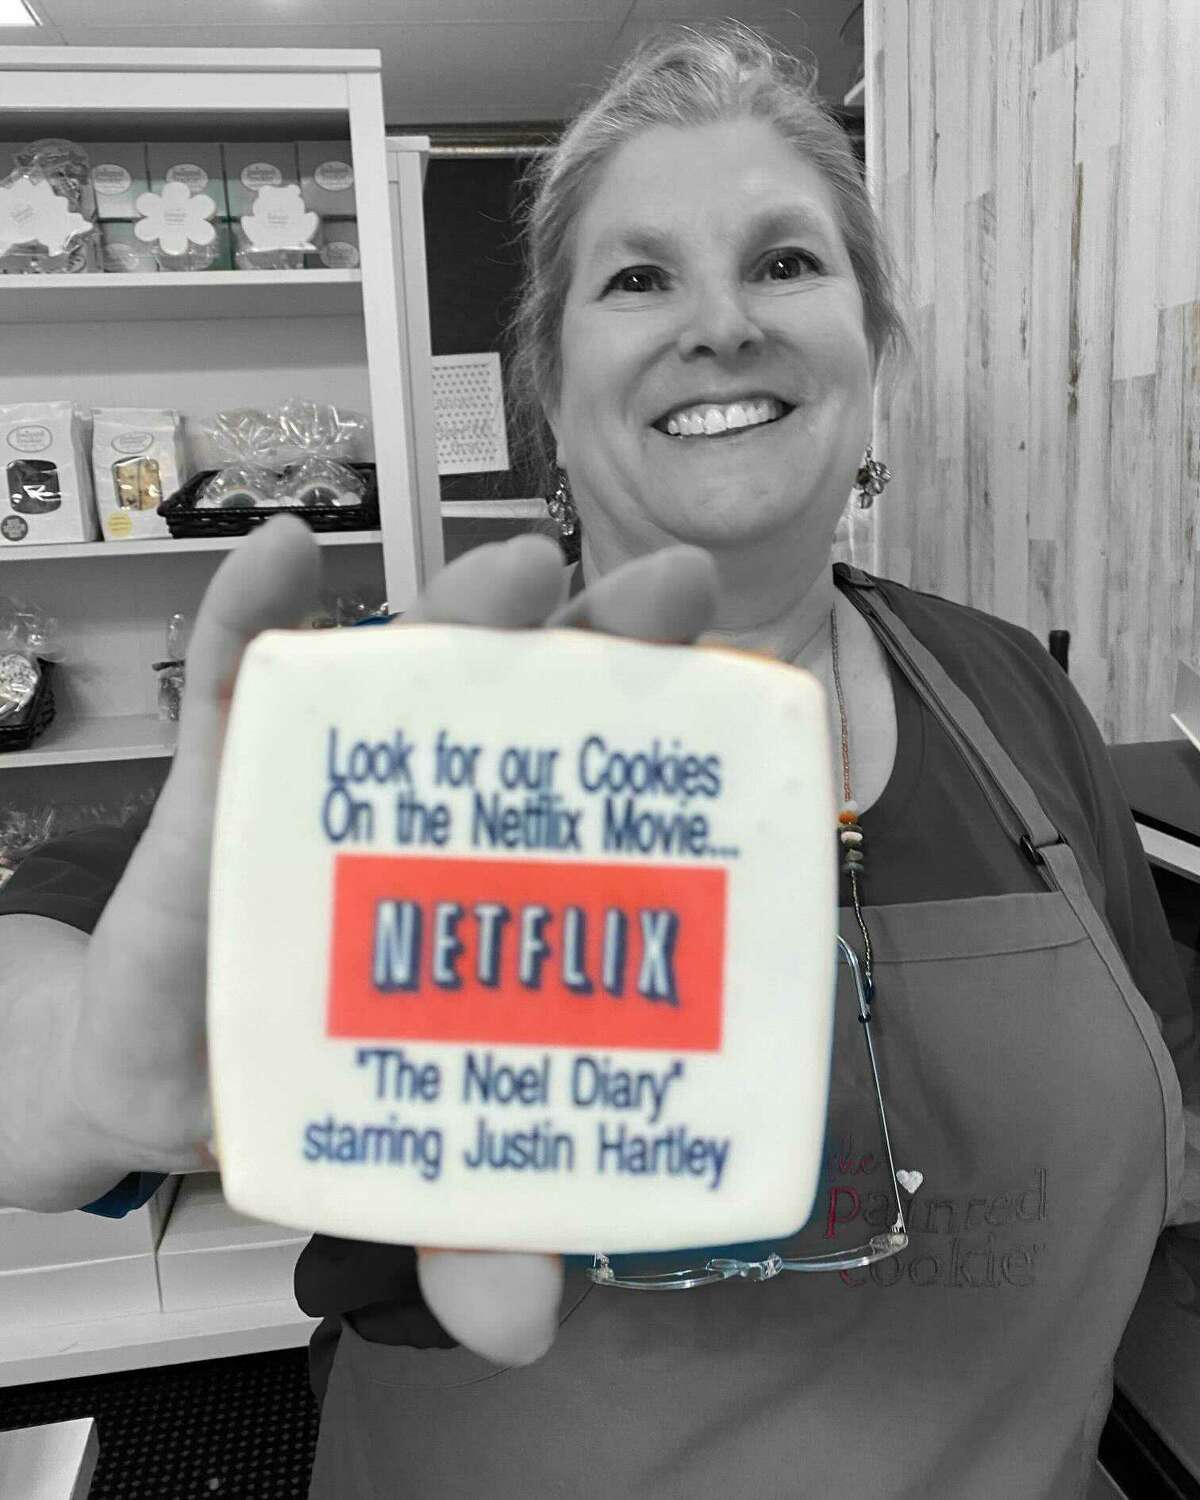 """Susan Schmitt, owner of The Painted Cookie in Wilton, Conn., was contacted by a prop manager for the Netflix movie, """"The Noel Diary,"""" which has been filming in Connecticut with Justin Hartleyand Treat Williams."""